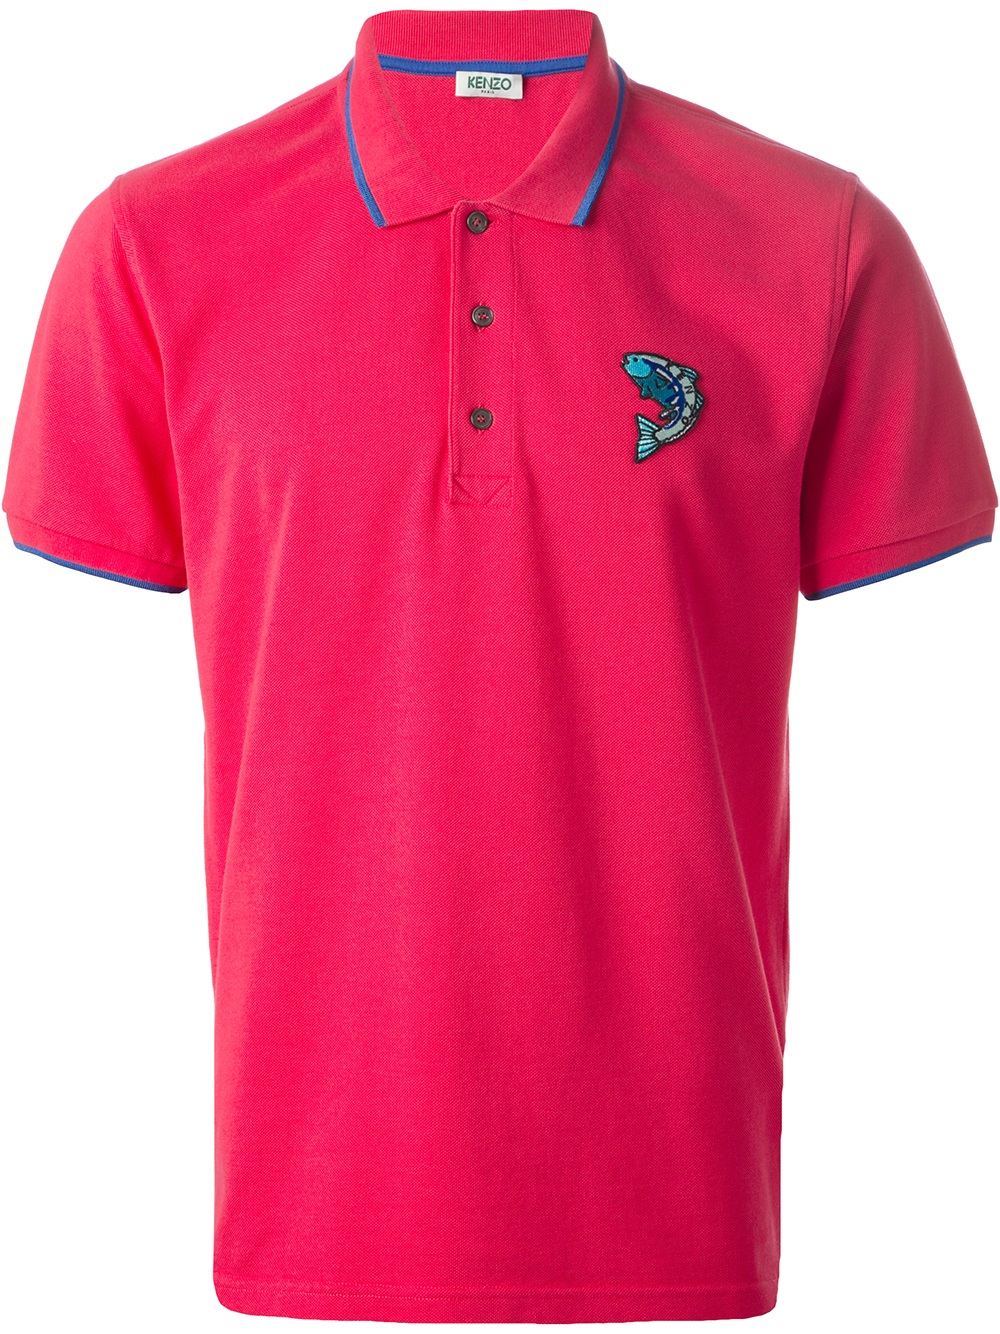 Kenzo Fish Polo Shirt In Purple For Men Pink Purple Lyst